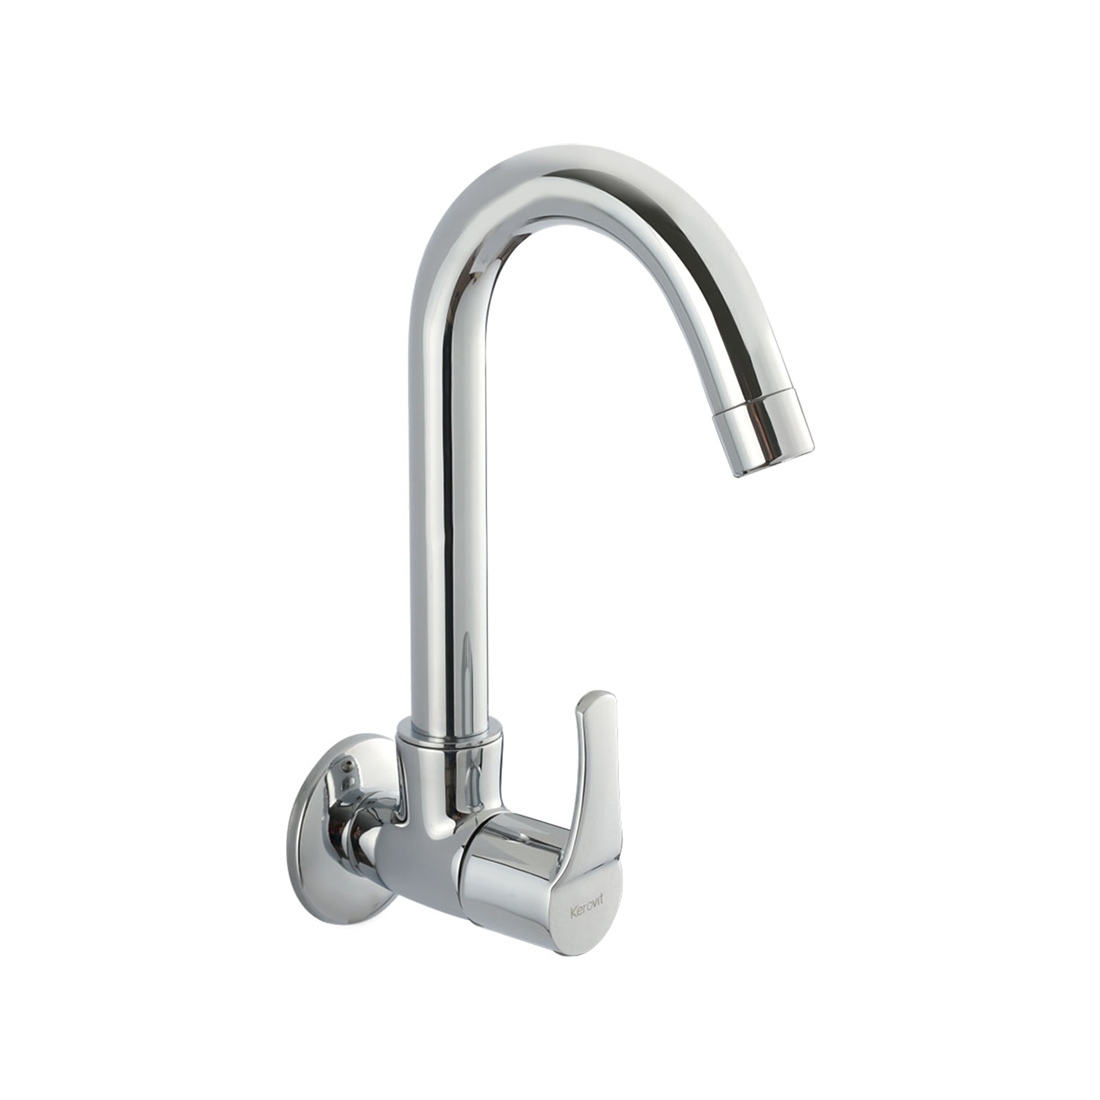 Kerovit Infinit KB2011025 Sink Cock With Swivel Spout and Flange